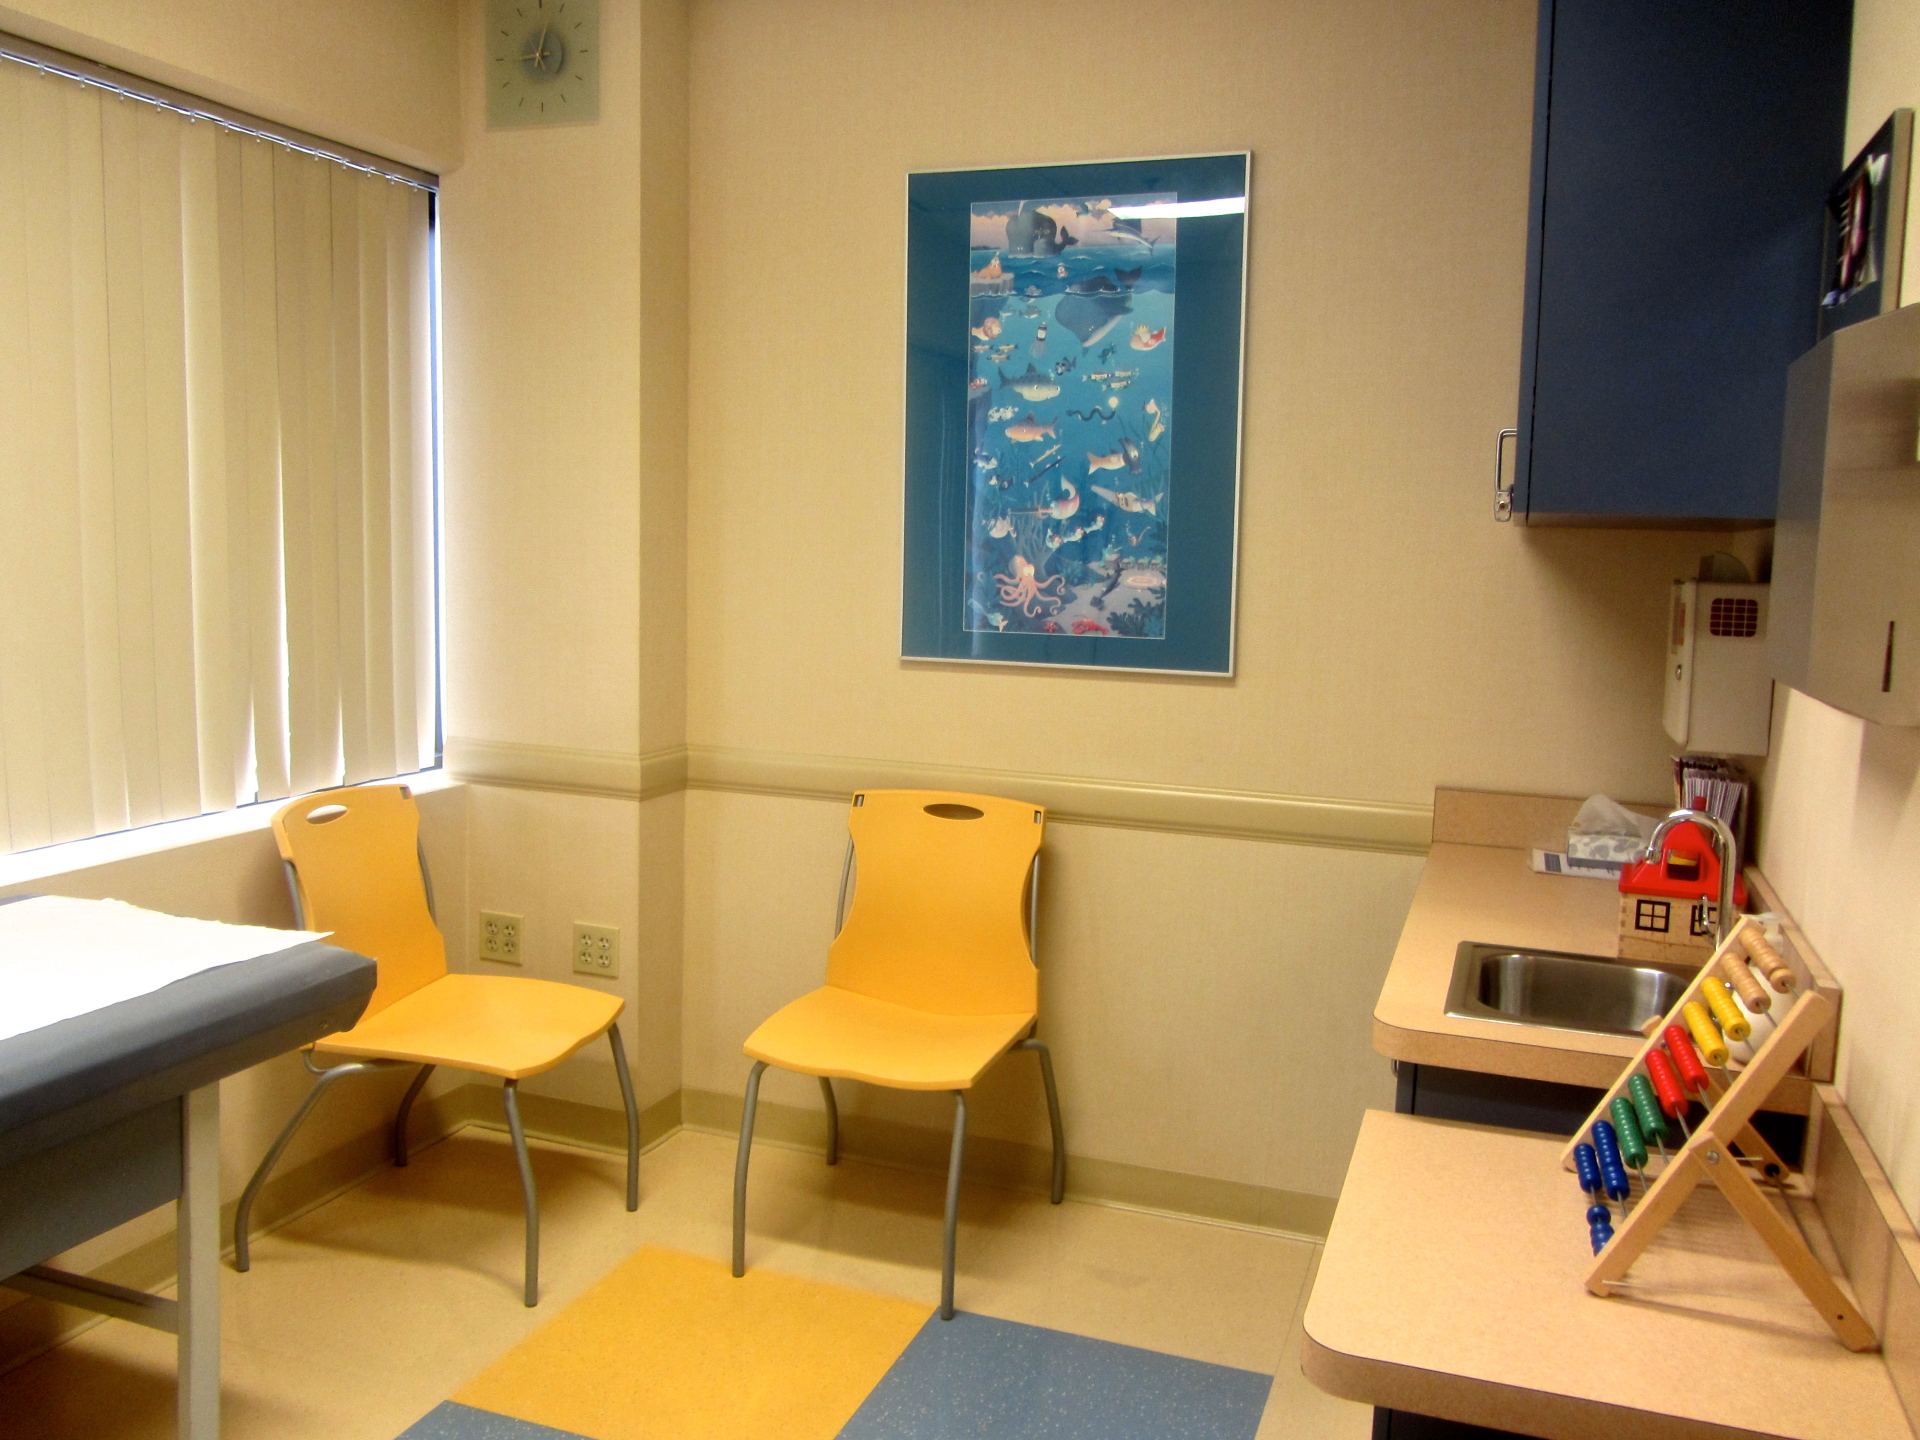 Our examination rooms.